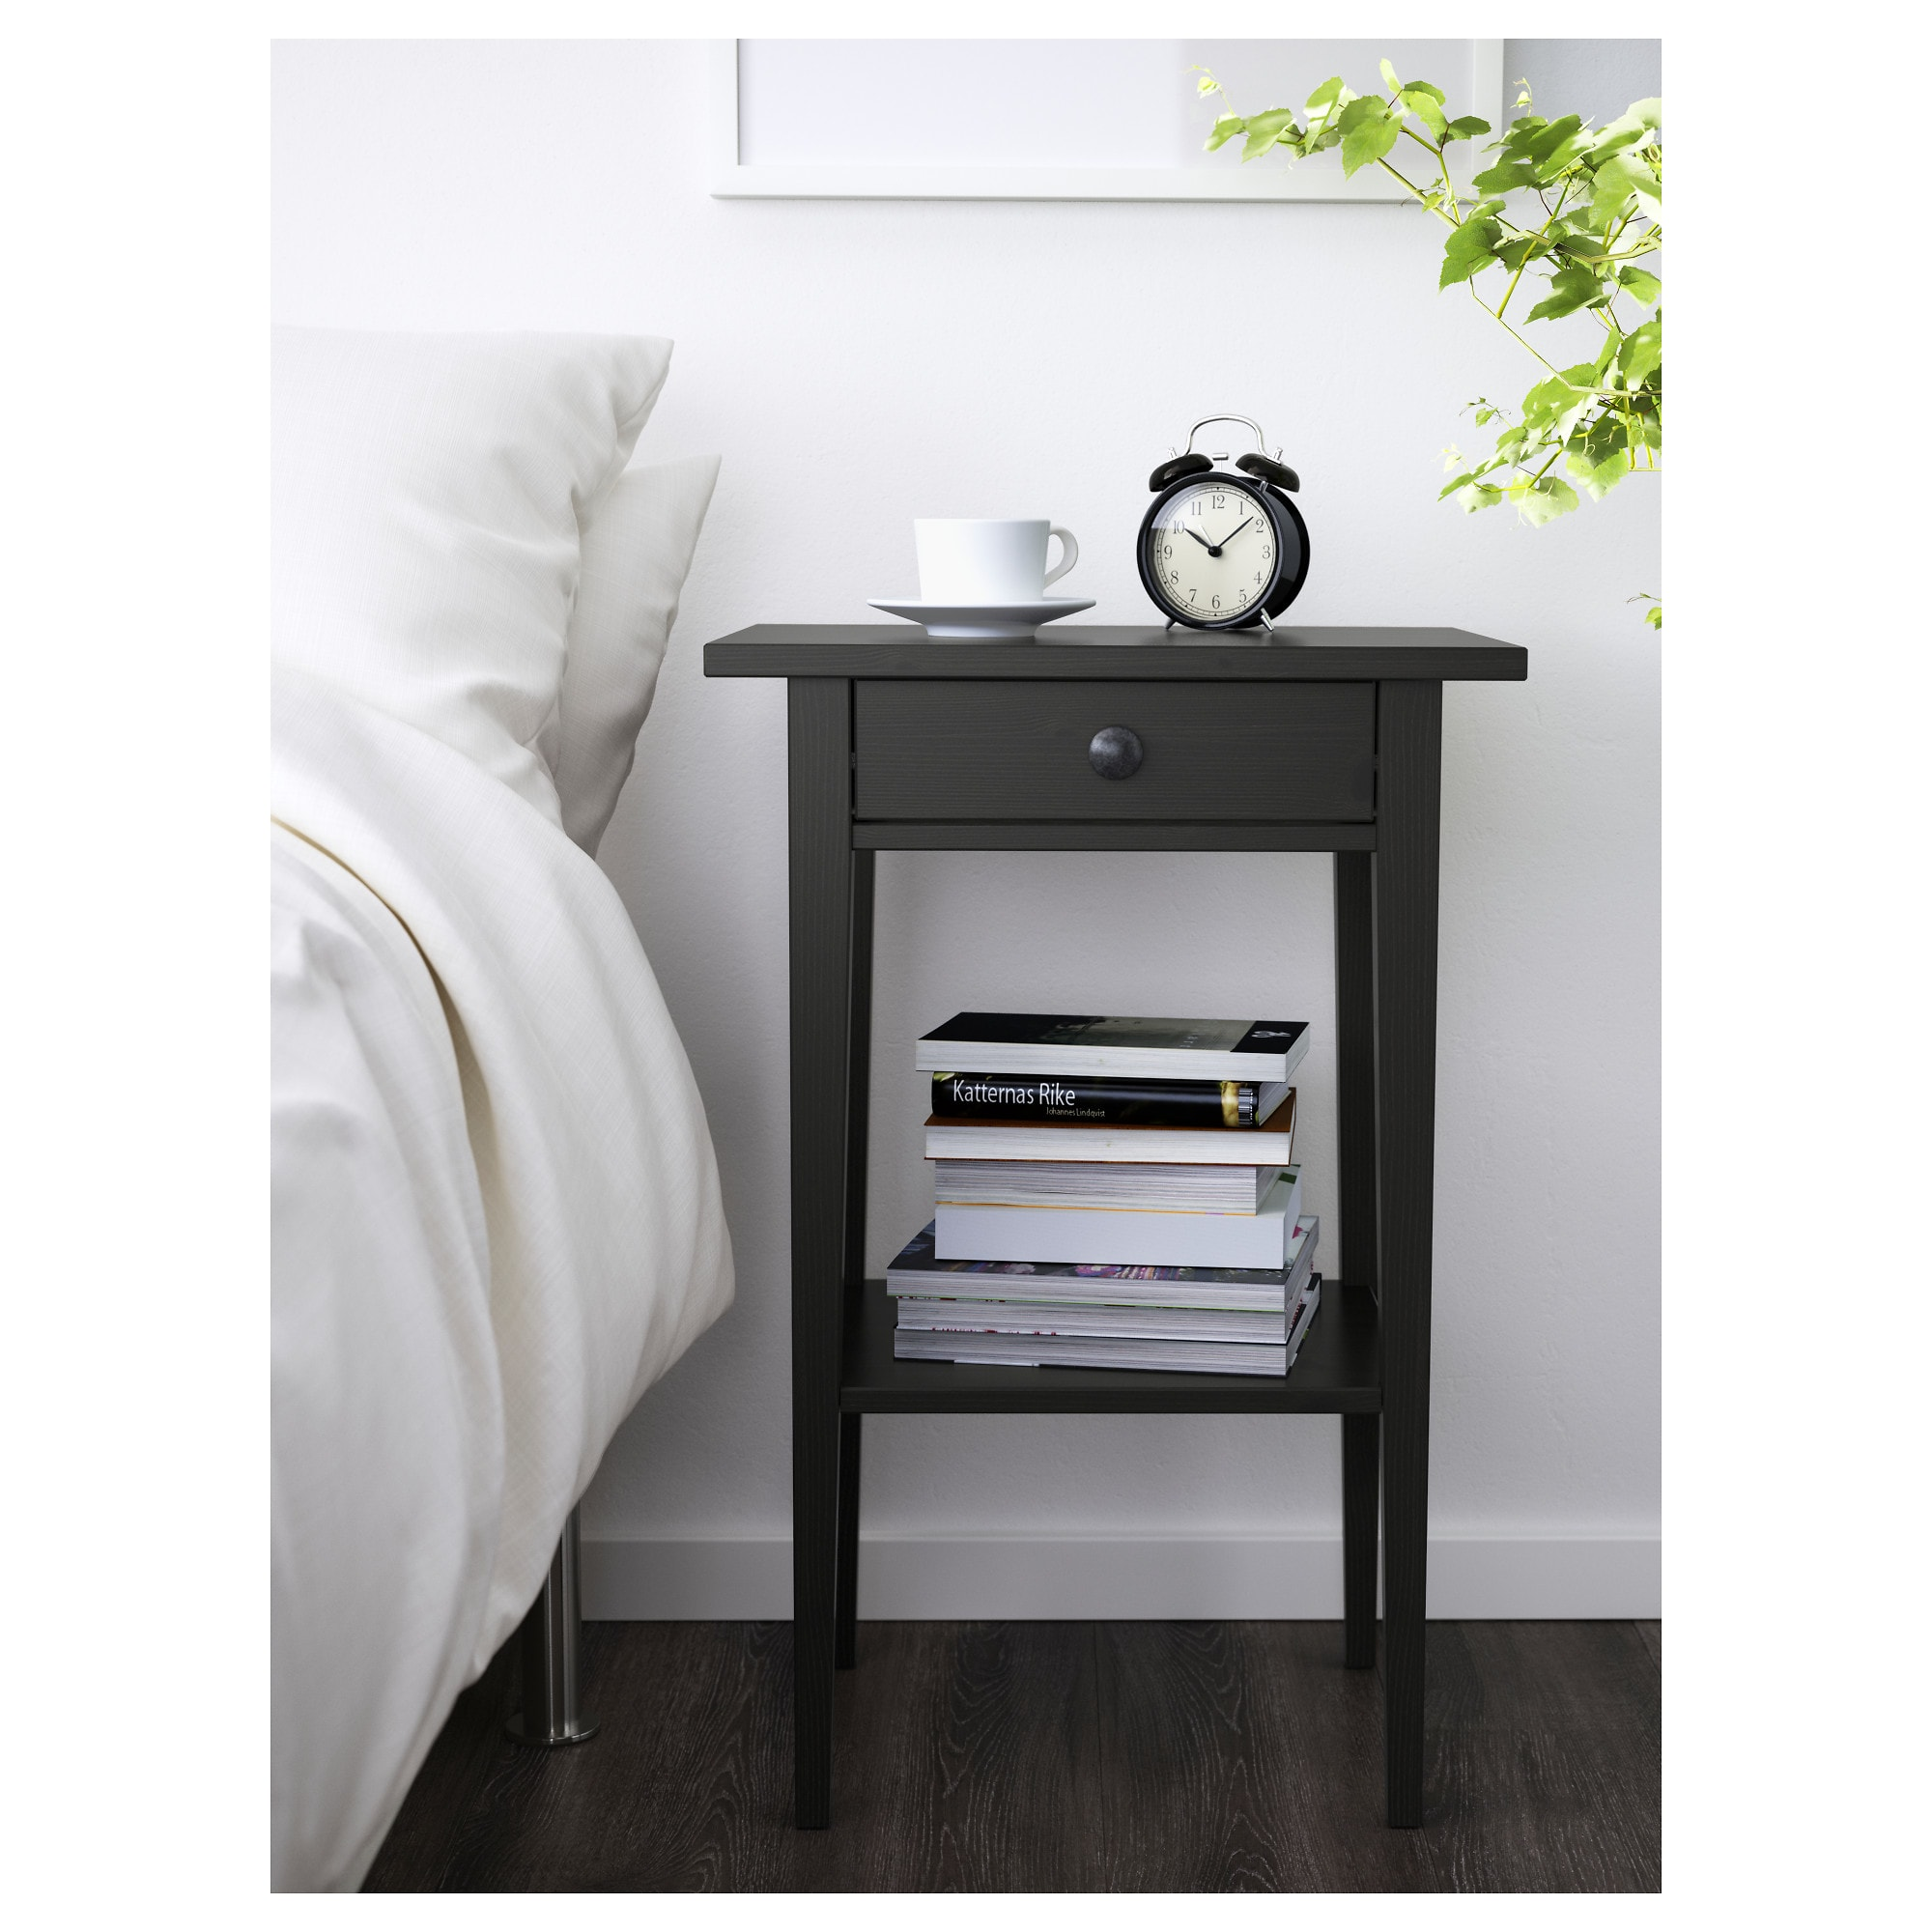 hemnes bedside table black brown ikea with regard bedroom side ideas timmy nightstand accent small round drawer west elm mattress marble dining room light blue white lamps mosaic